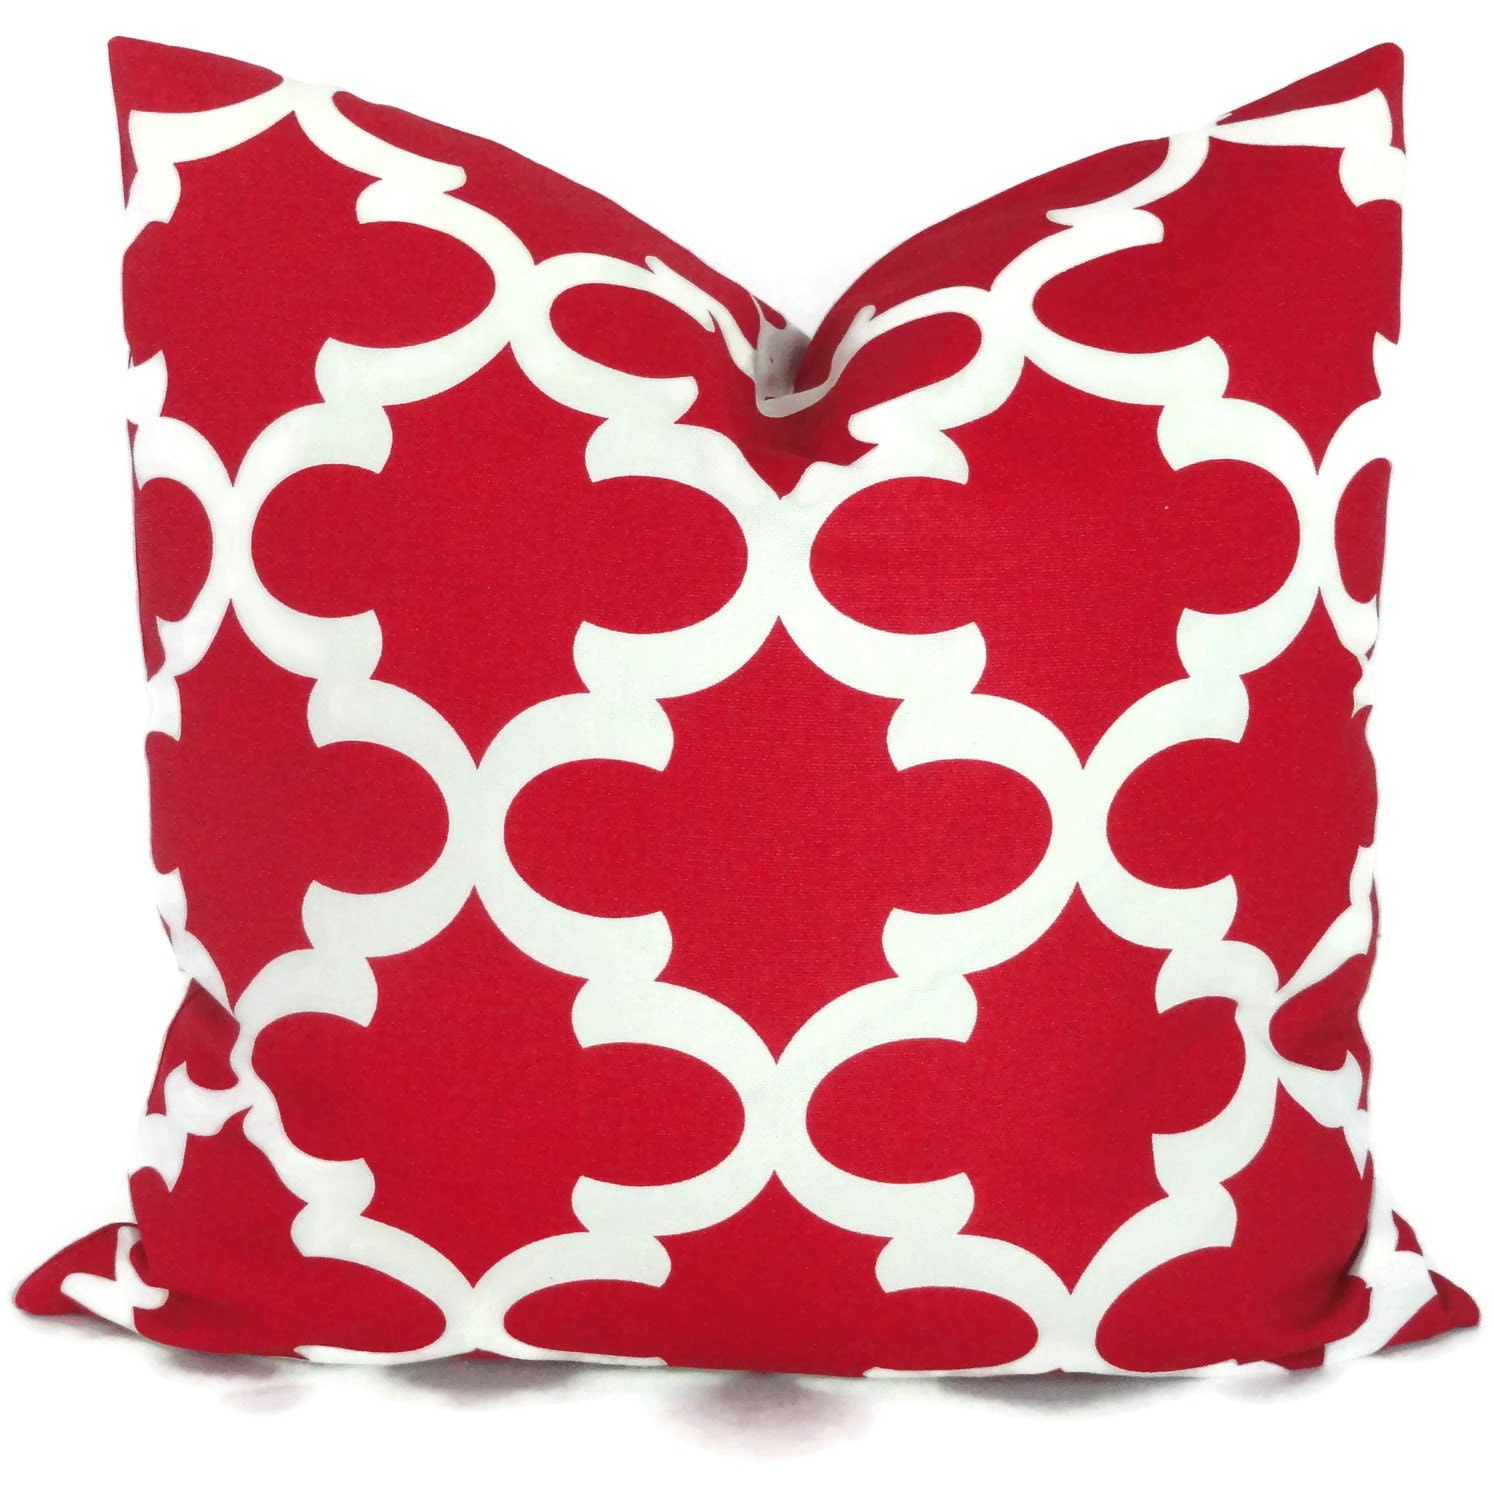 22x22 Decorative Pillows : Red Quatrefoil Trellis Decorative Pillow Cover 18x18 20x20